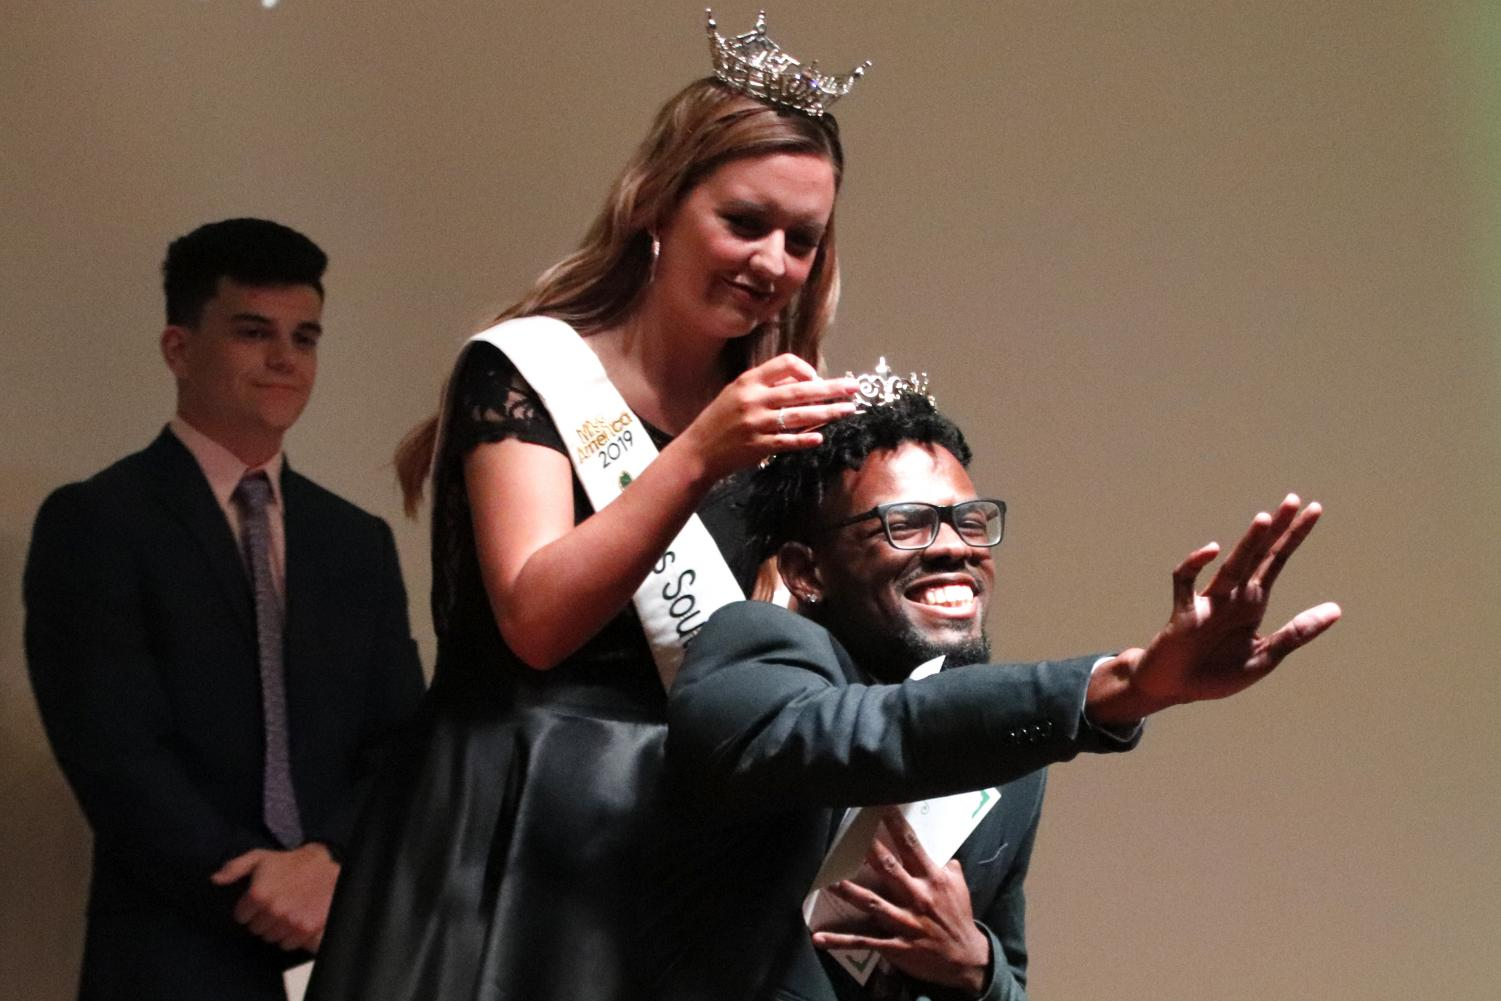 Miss Southeastern Louisiana Univeristy 2019 Chelsey Blank hugs Brian Williams, a senior communication major, after Williams was announced Mr. Southeastern Louisiana Univeristy 2019. Blank organized the competition to raide funds for her platform: Down Syndrome Awareness.